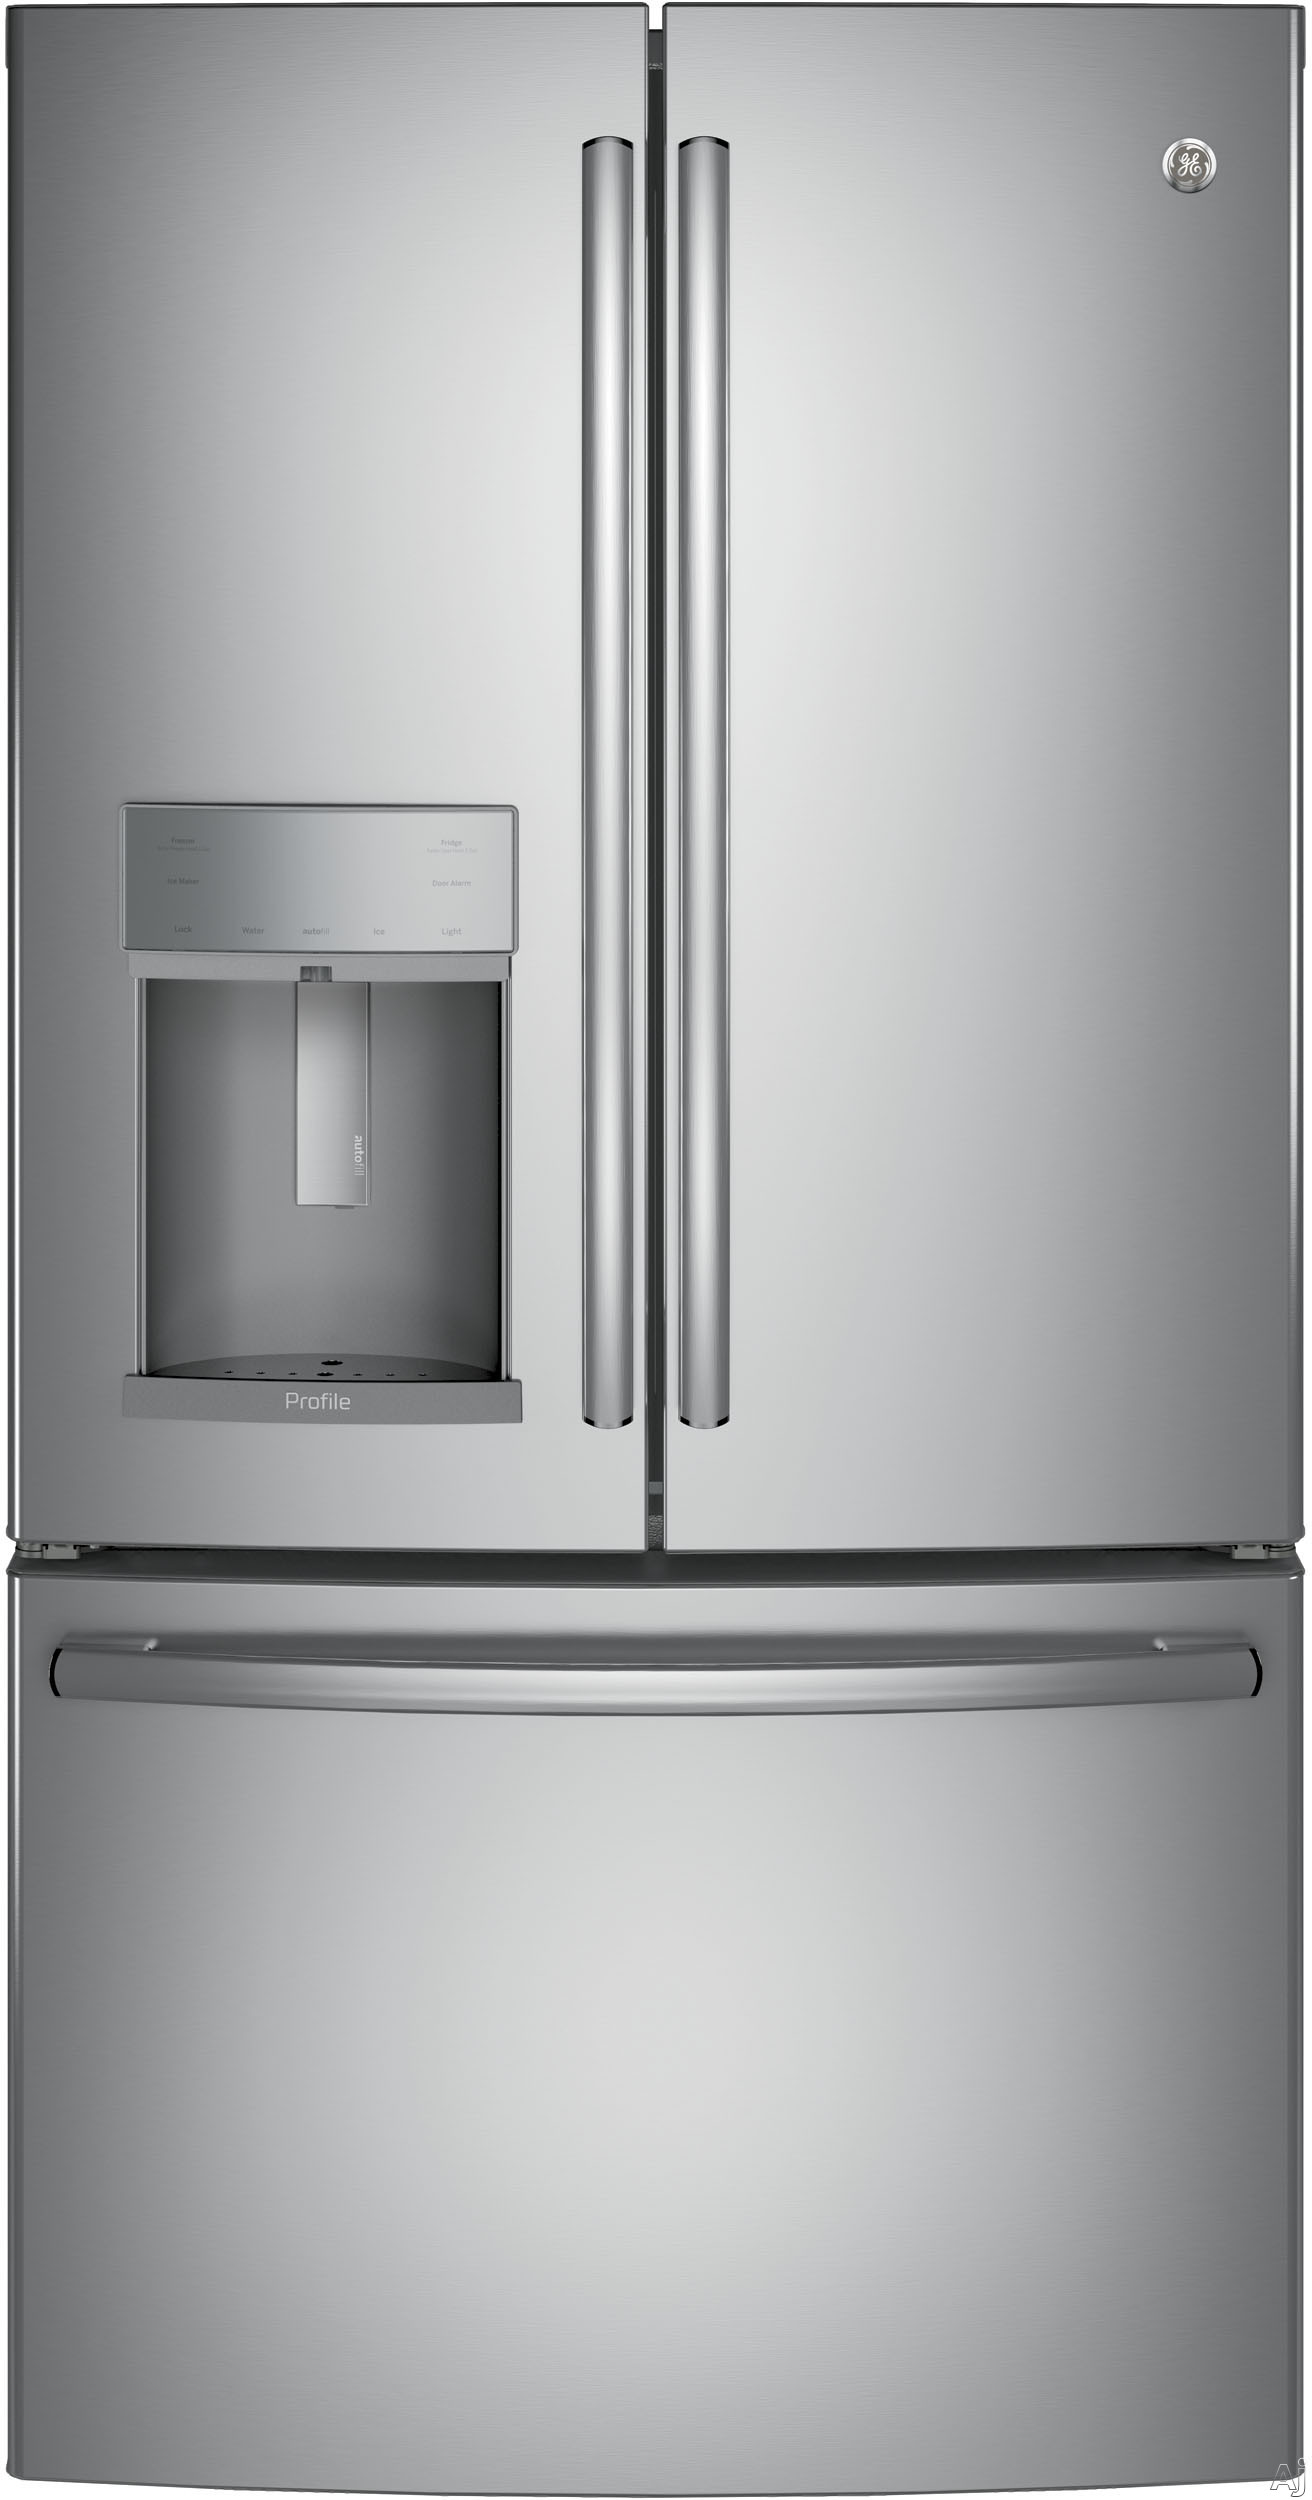 GE Profile PFE28KSKSS 36 Inch French Door Refrigerator with Temperature-Controlled Drawer, Turbo Cool Setting, Autofill External Dispenser, 27.8 cu. ft. Capacity, Adjustable Spill-Proof Shelving, Sabbath Mode, ADA Compliant and ENERGY STAR®: Stainless Steel